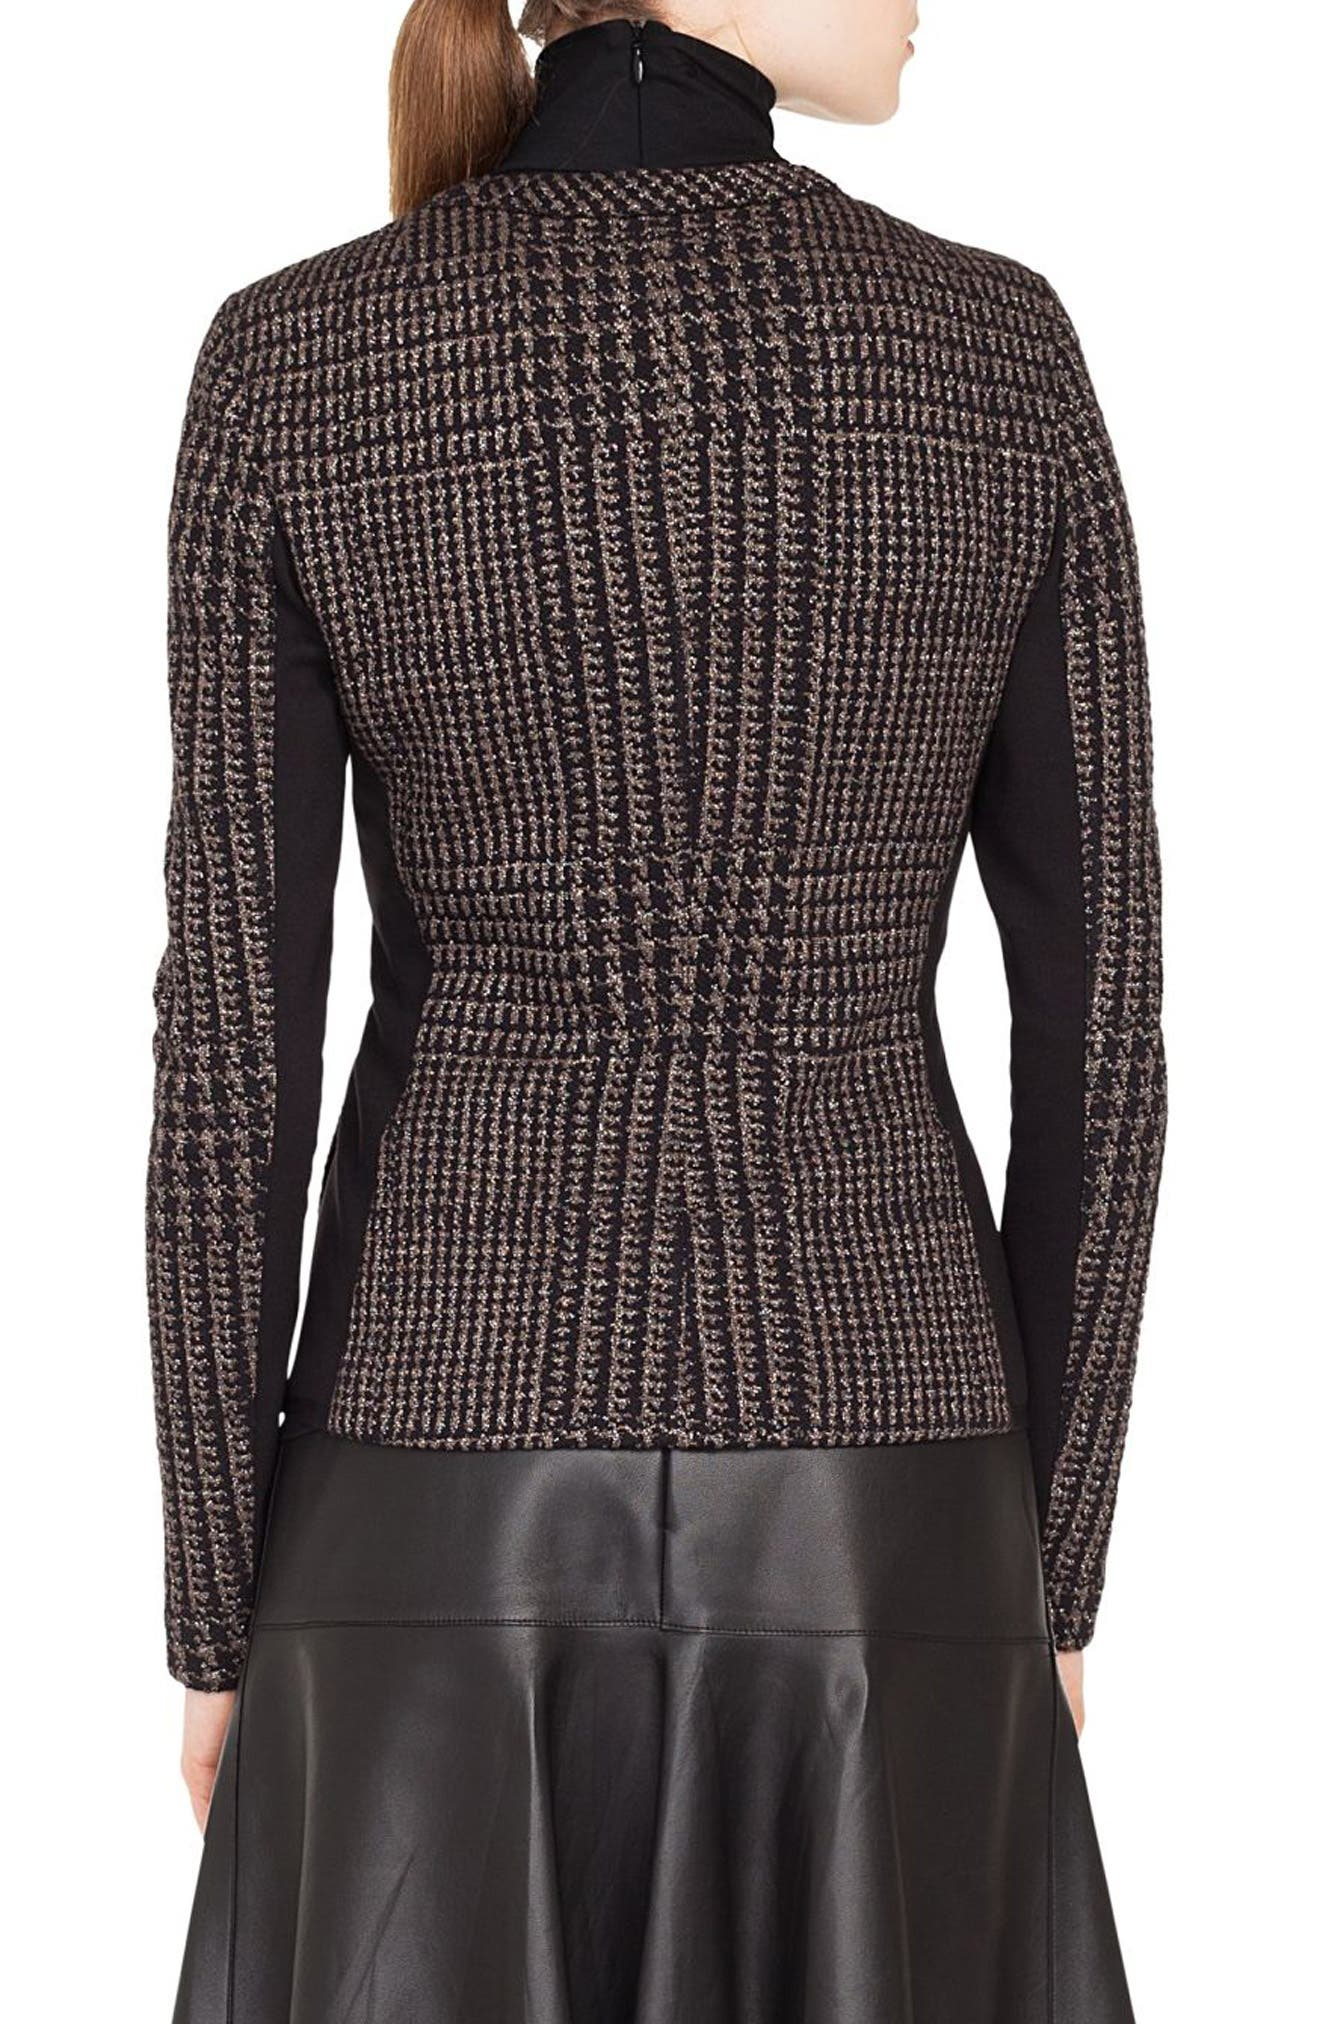 Metallic Houndstooth Jacquard Jacket,                             Alternate thumbnail 2, color,                             BLACK/ TAUPE